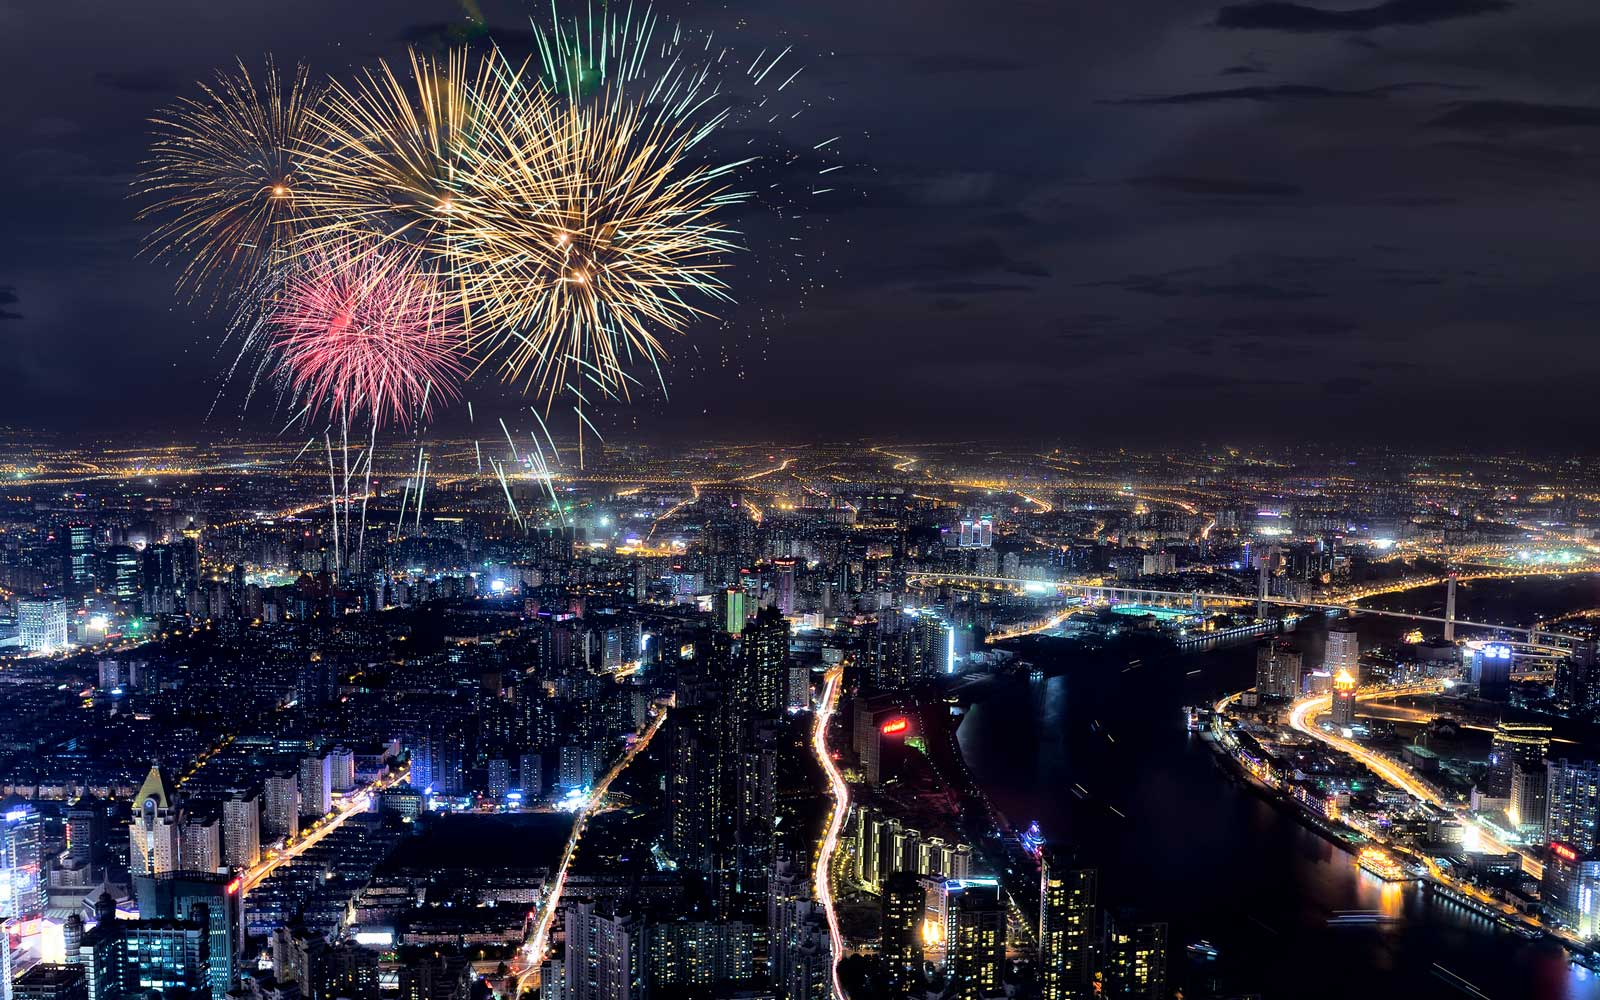 Festival fireworks under the Shanghai city at night